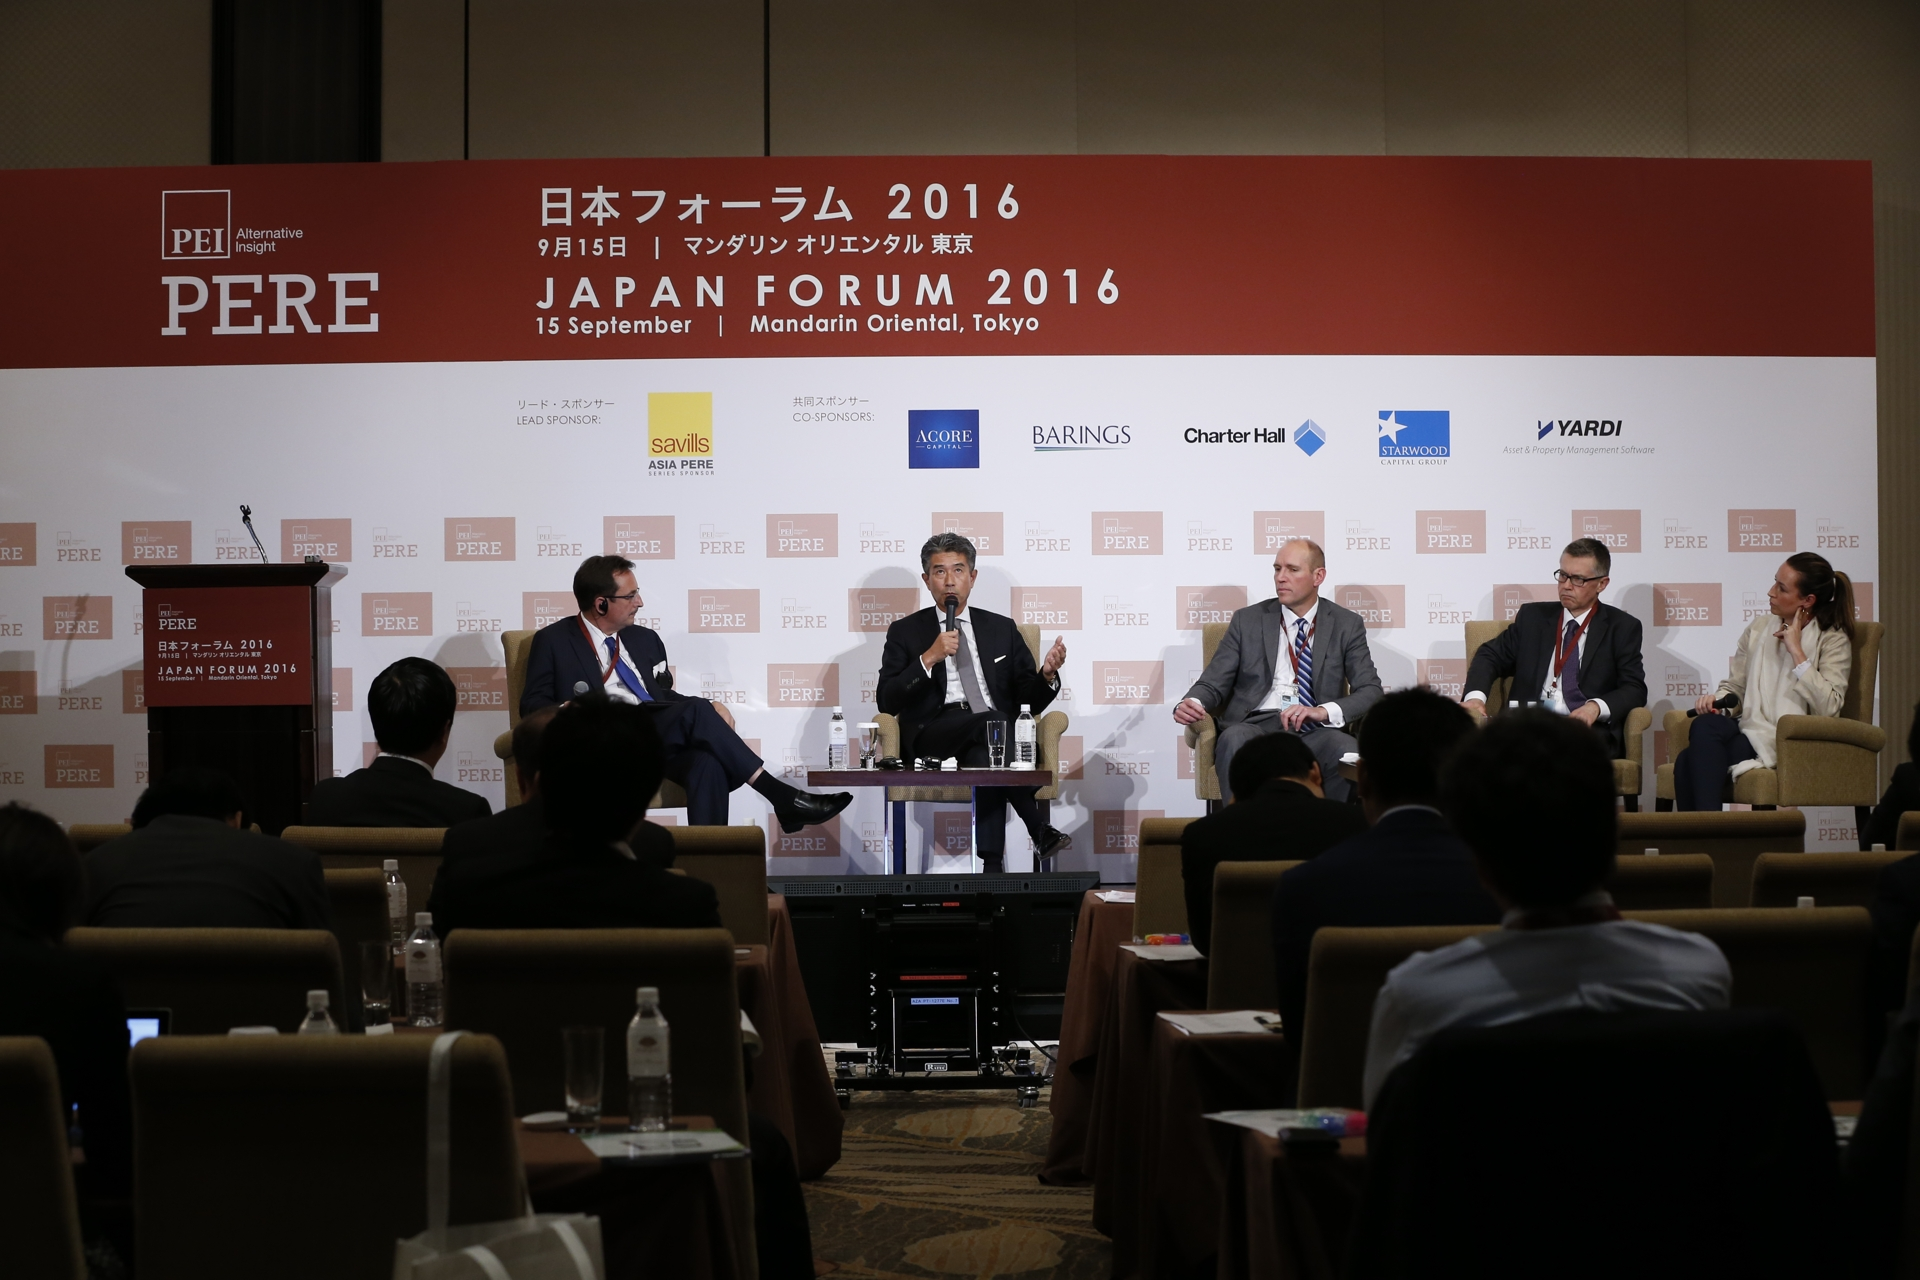 Christopher Dillon moderates a panel discussion at the PERE Japan Forum